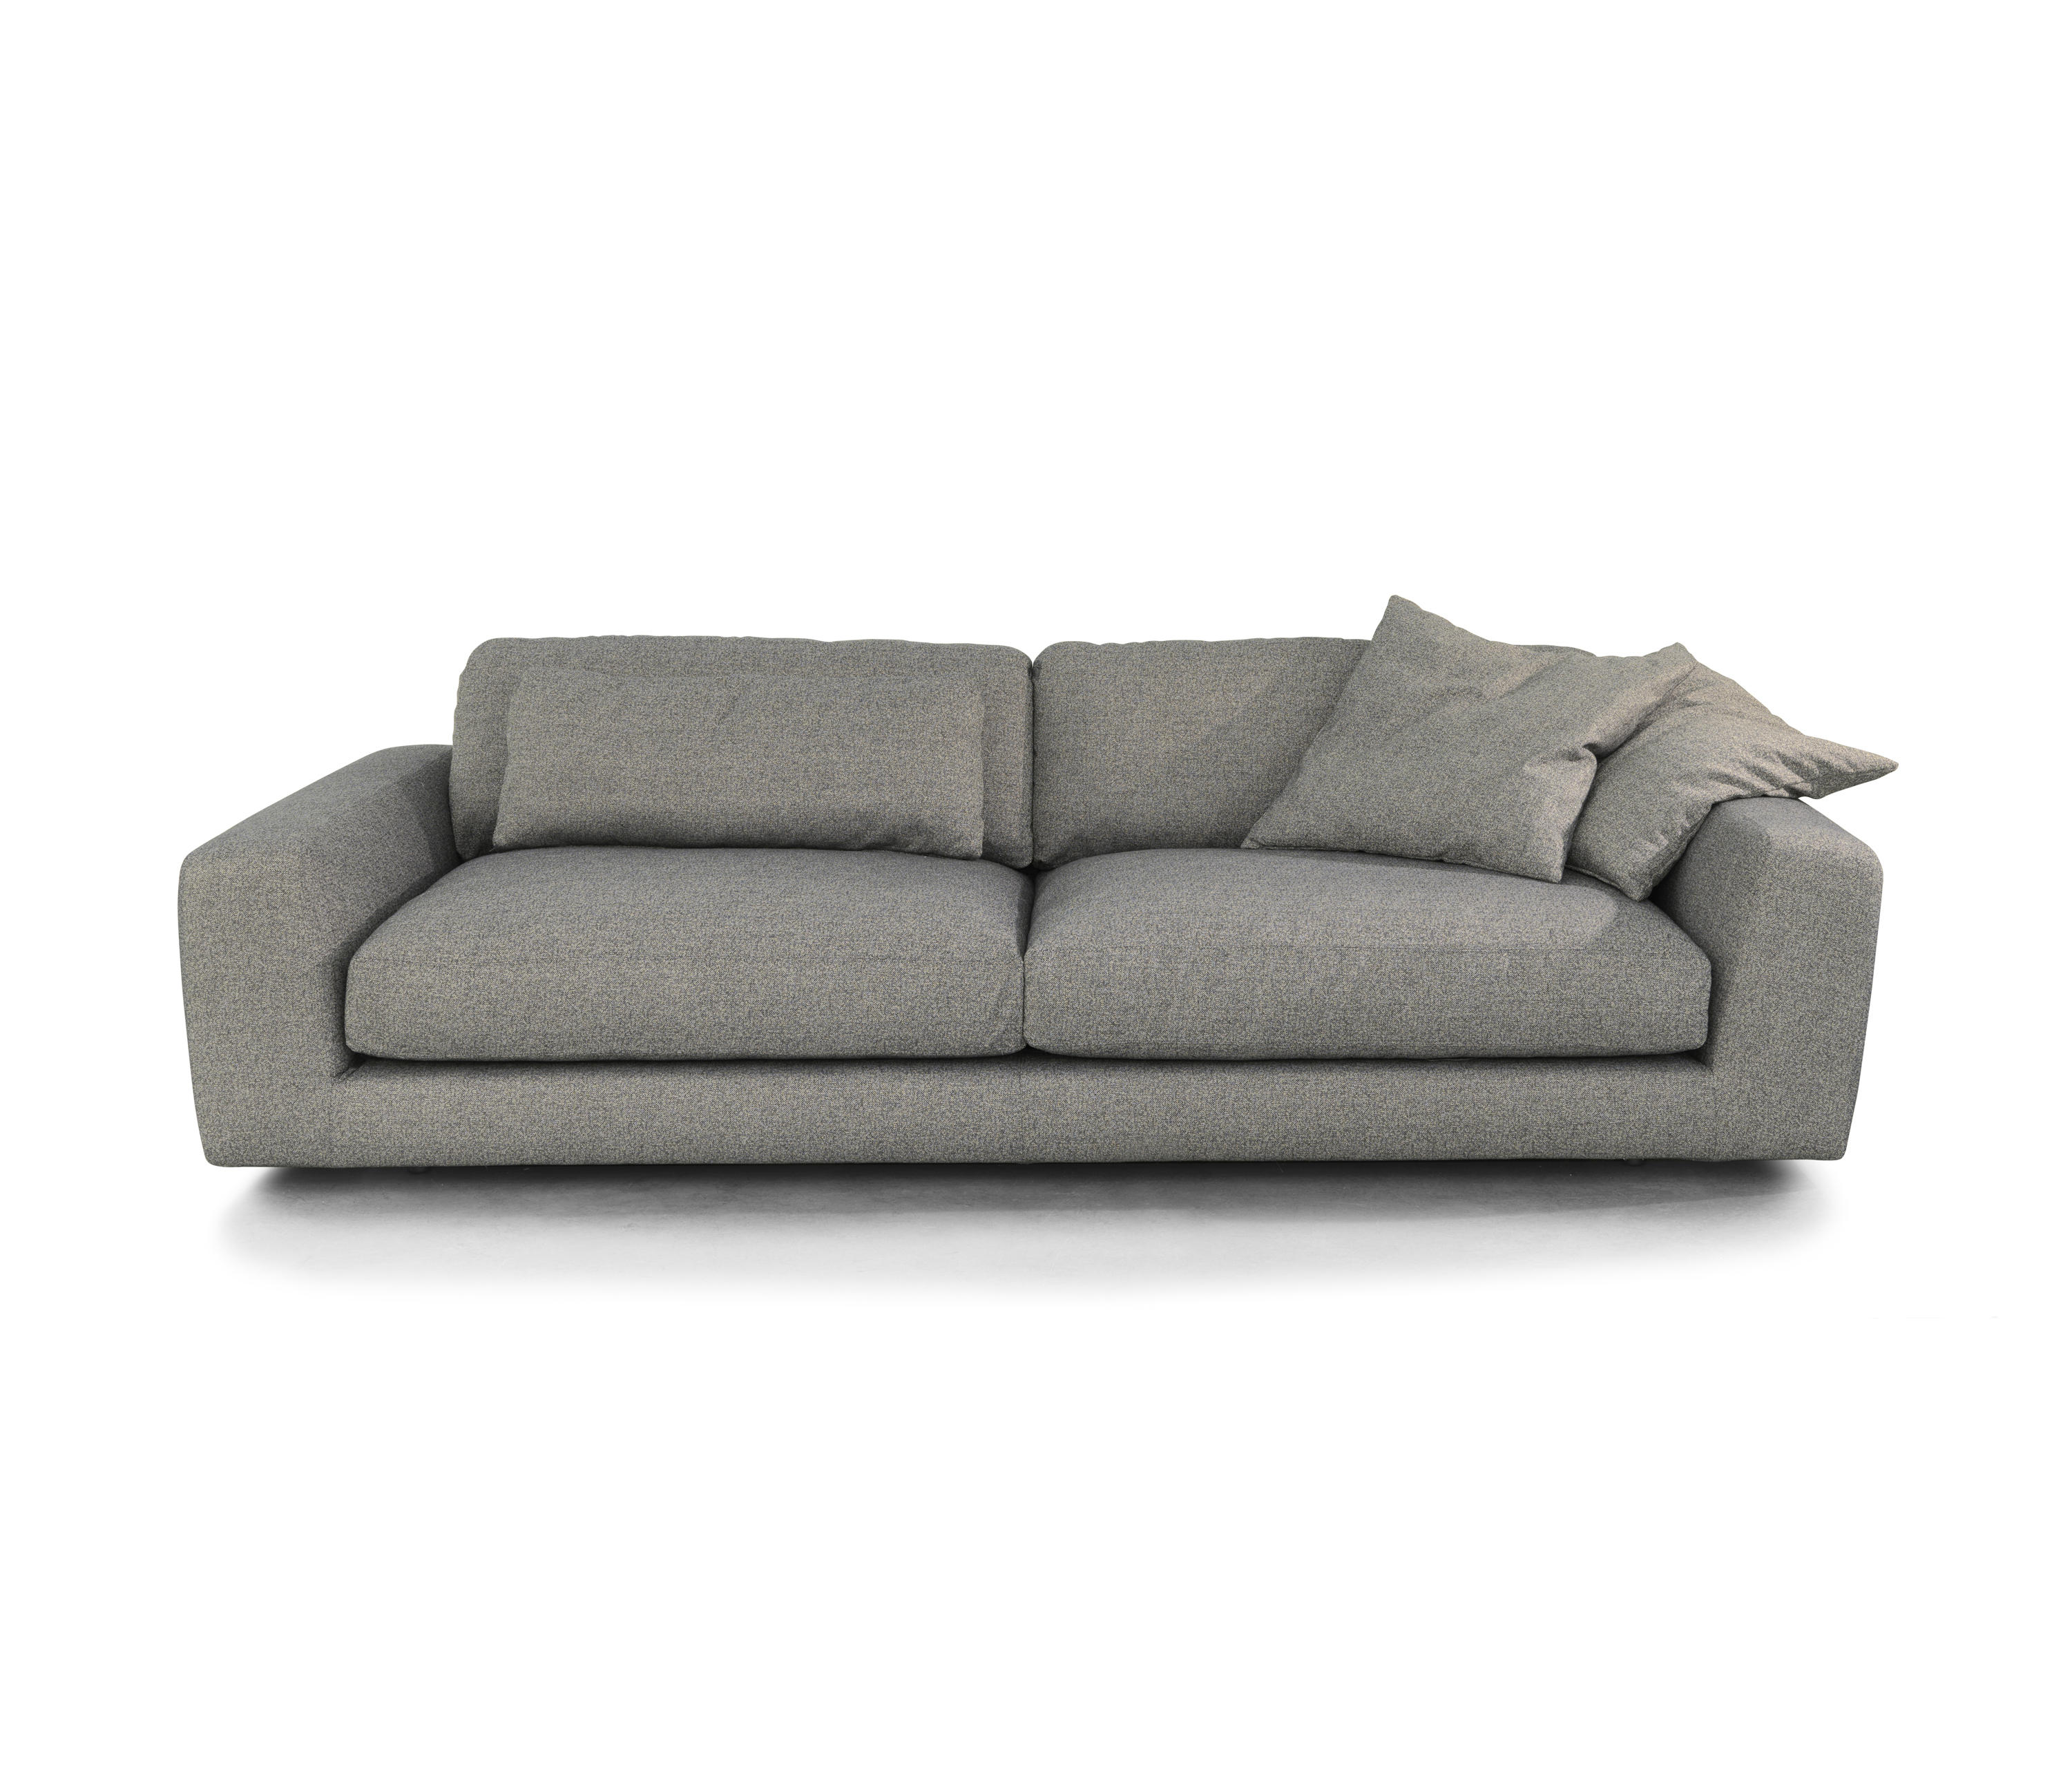 Sconto Couch Sofa Garnitur Schlafsofa Belle Mit L Form Sofa With